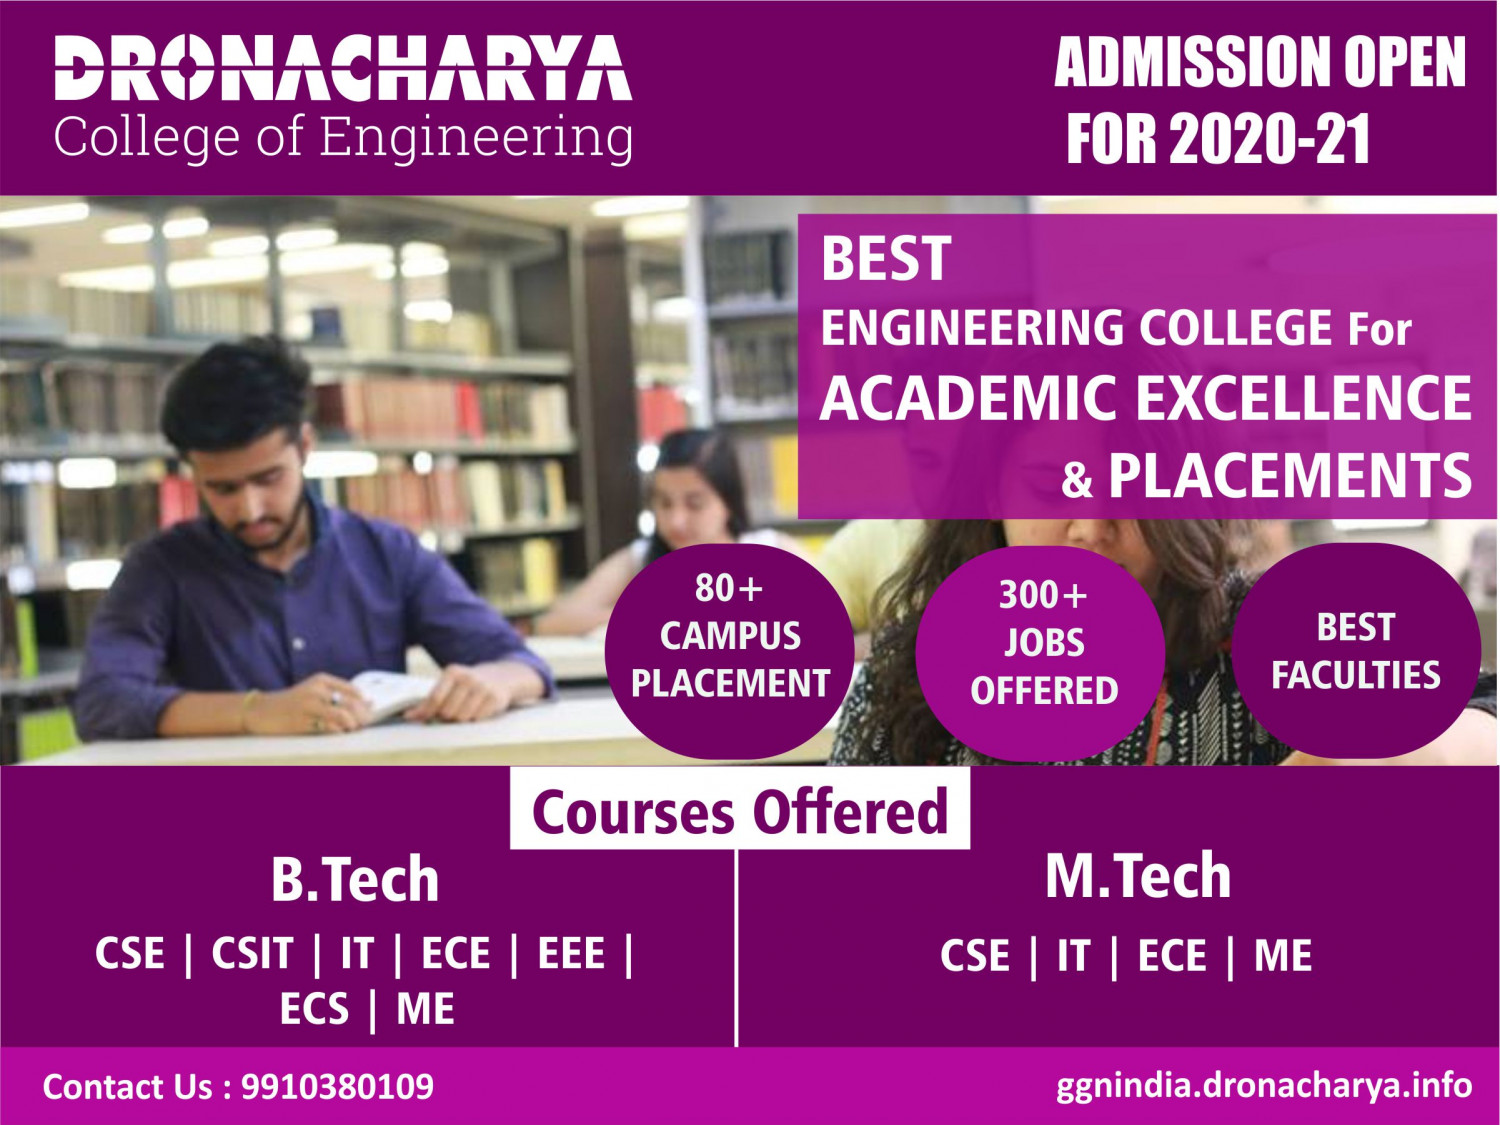 Top Placement Engineering College in Gurgaon_Dronacharya Infographic